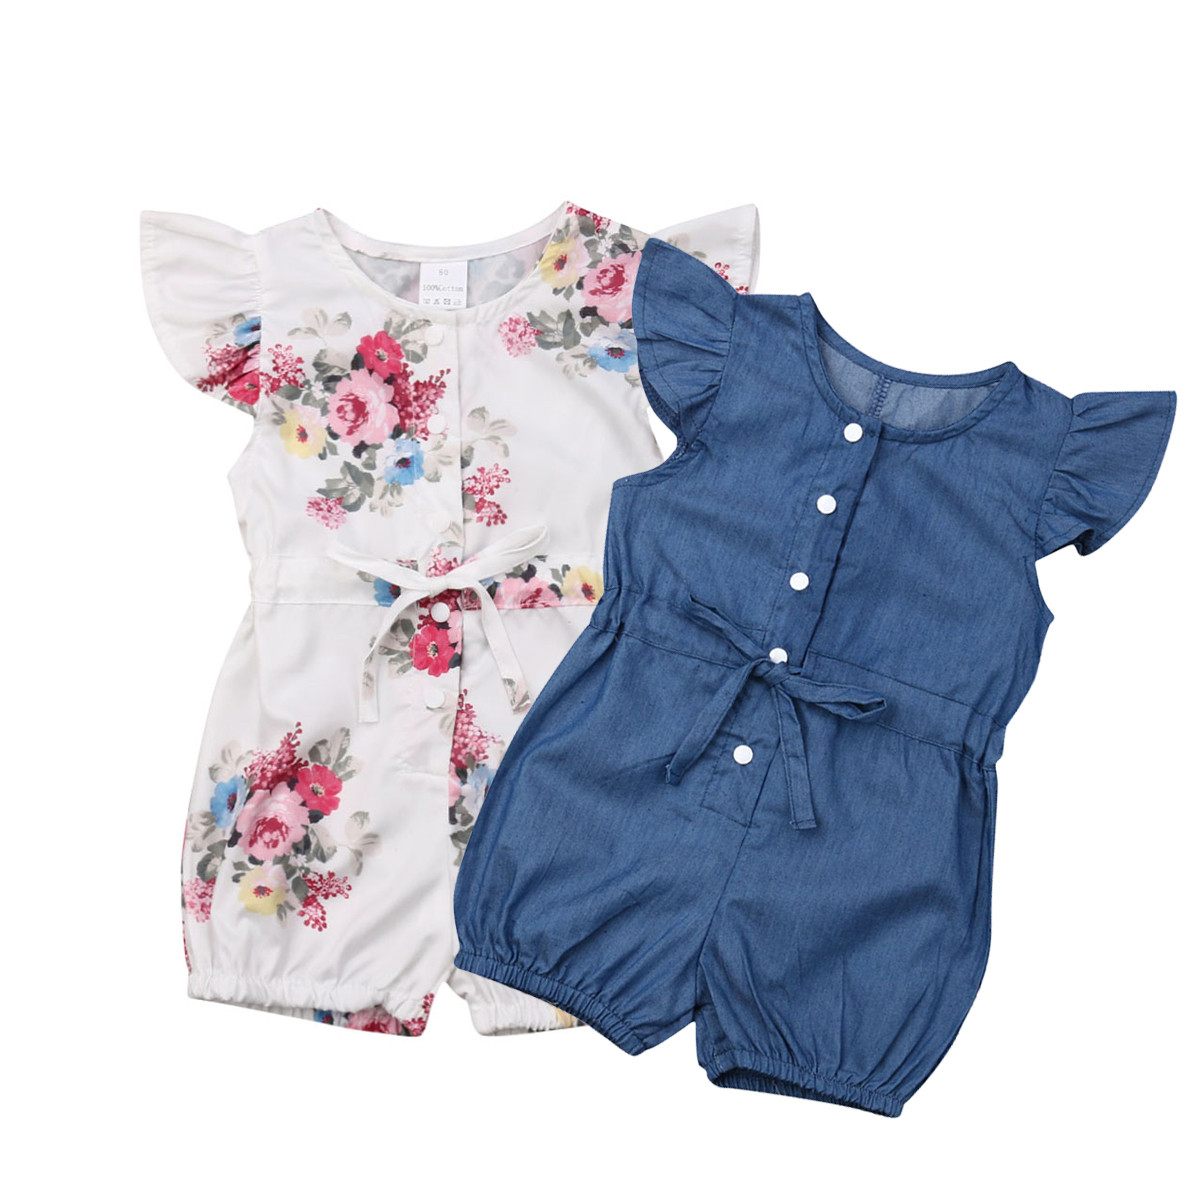 Pudcoco Baby Girl Kid Clothes Flying Sleeve Jumpsuit Flower/Denim Ruffle Cute   Romper   Outfit Set